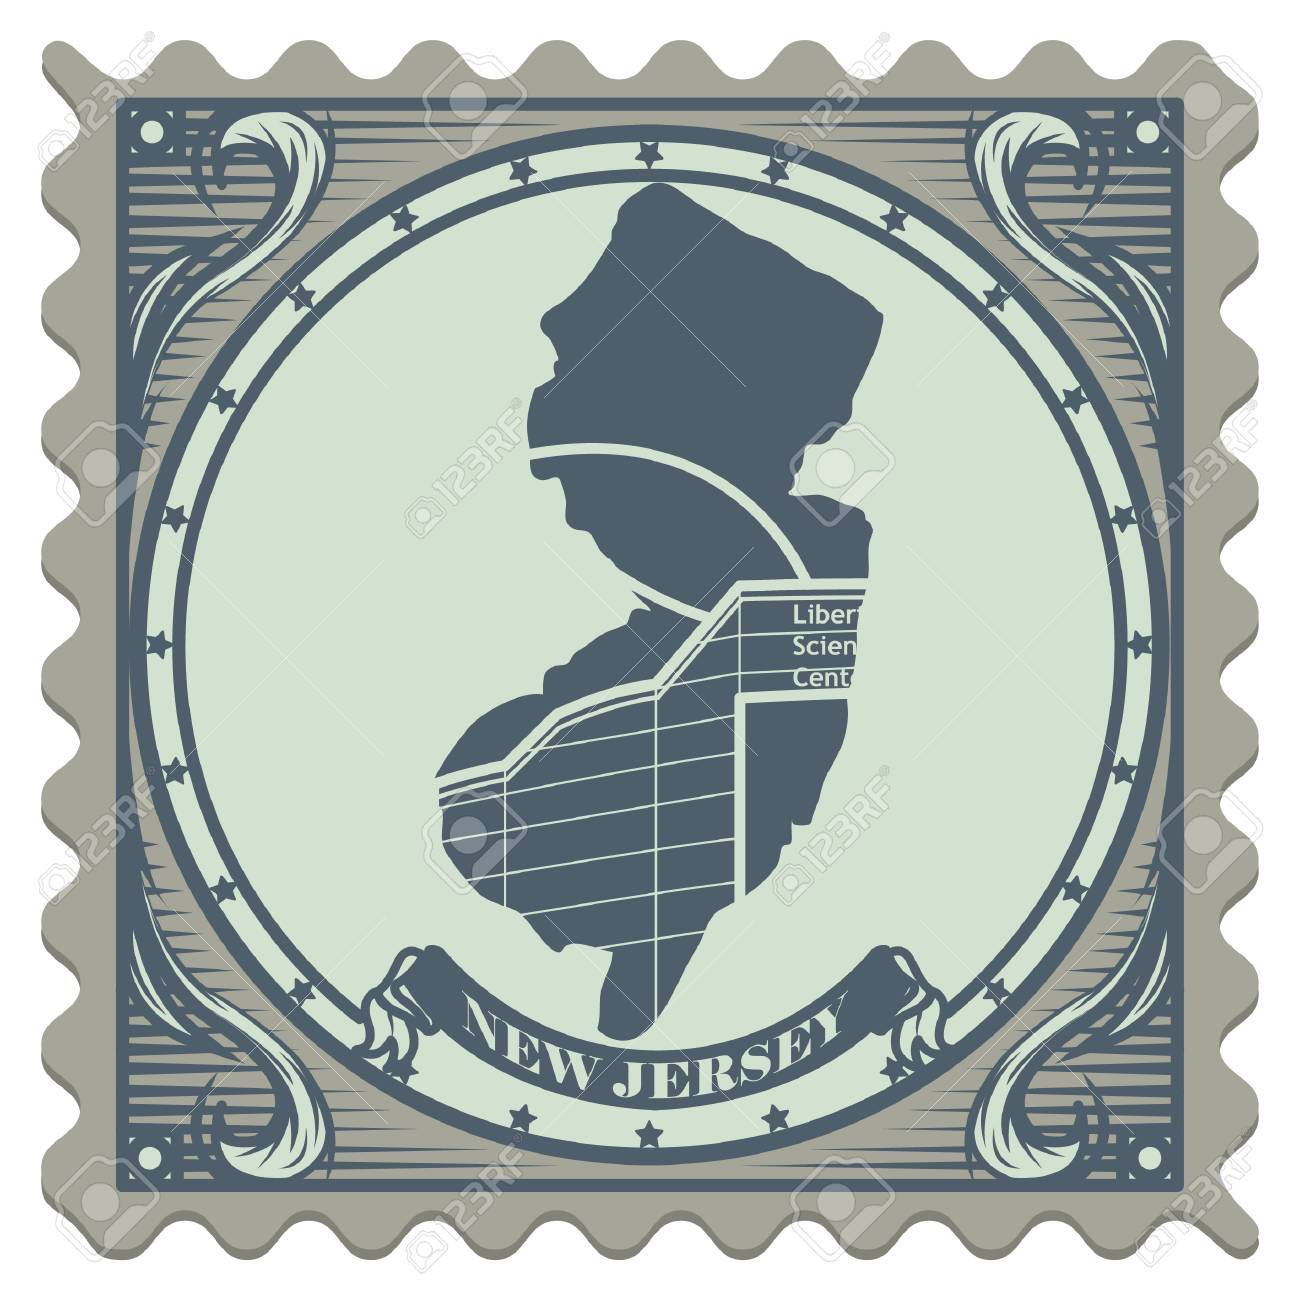 New Jersey State Postage Stamp Stock Vector